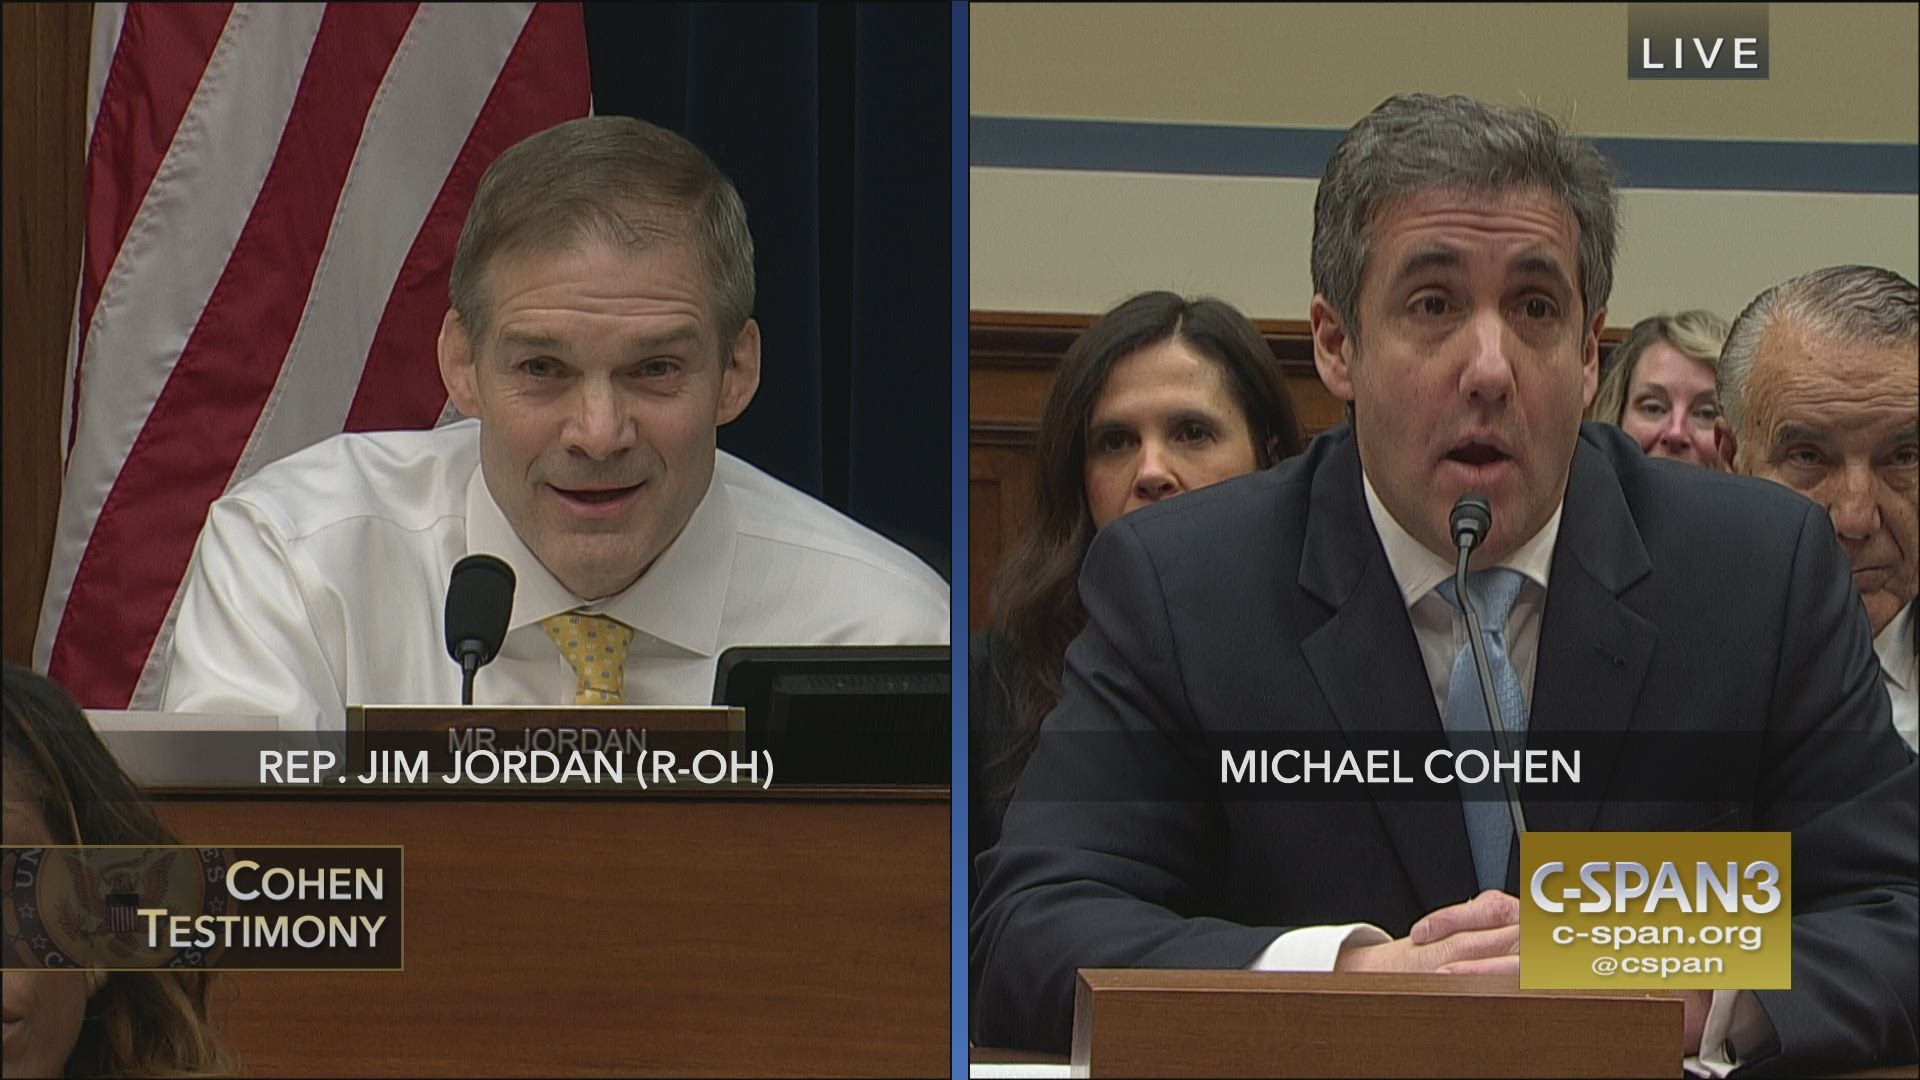 Rep  Jim Jordan Attempts to Discredit Michael Cohen's Testimony, House  Oversight and Government Report Committee Hearing, November 27, 2019